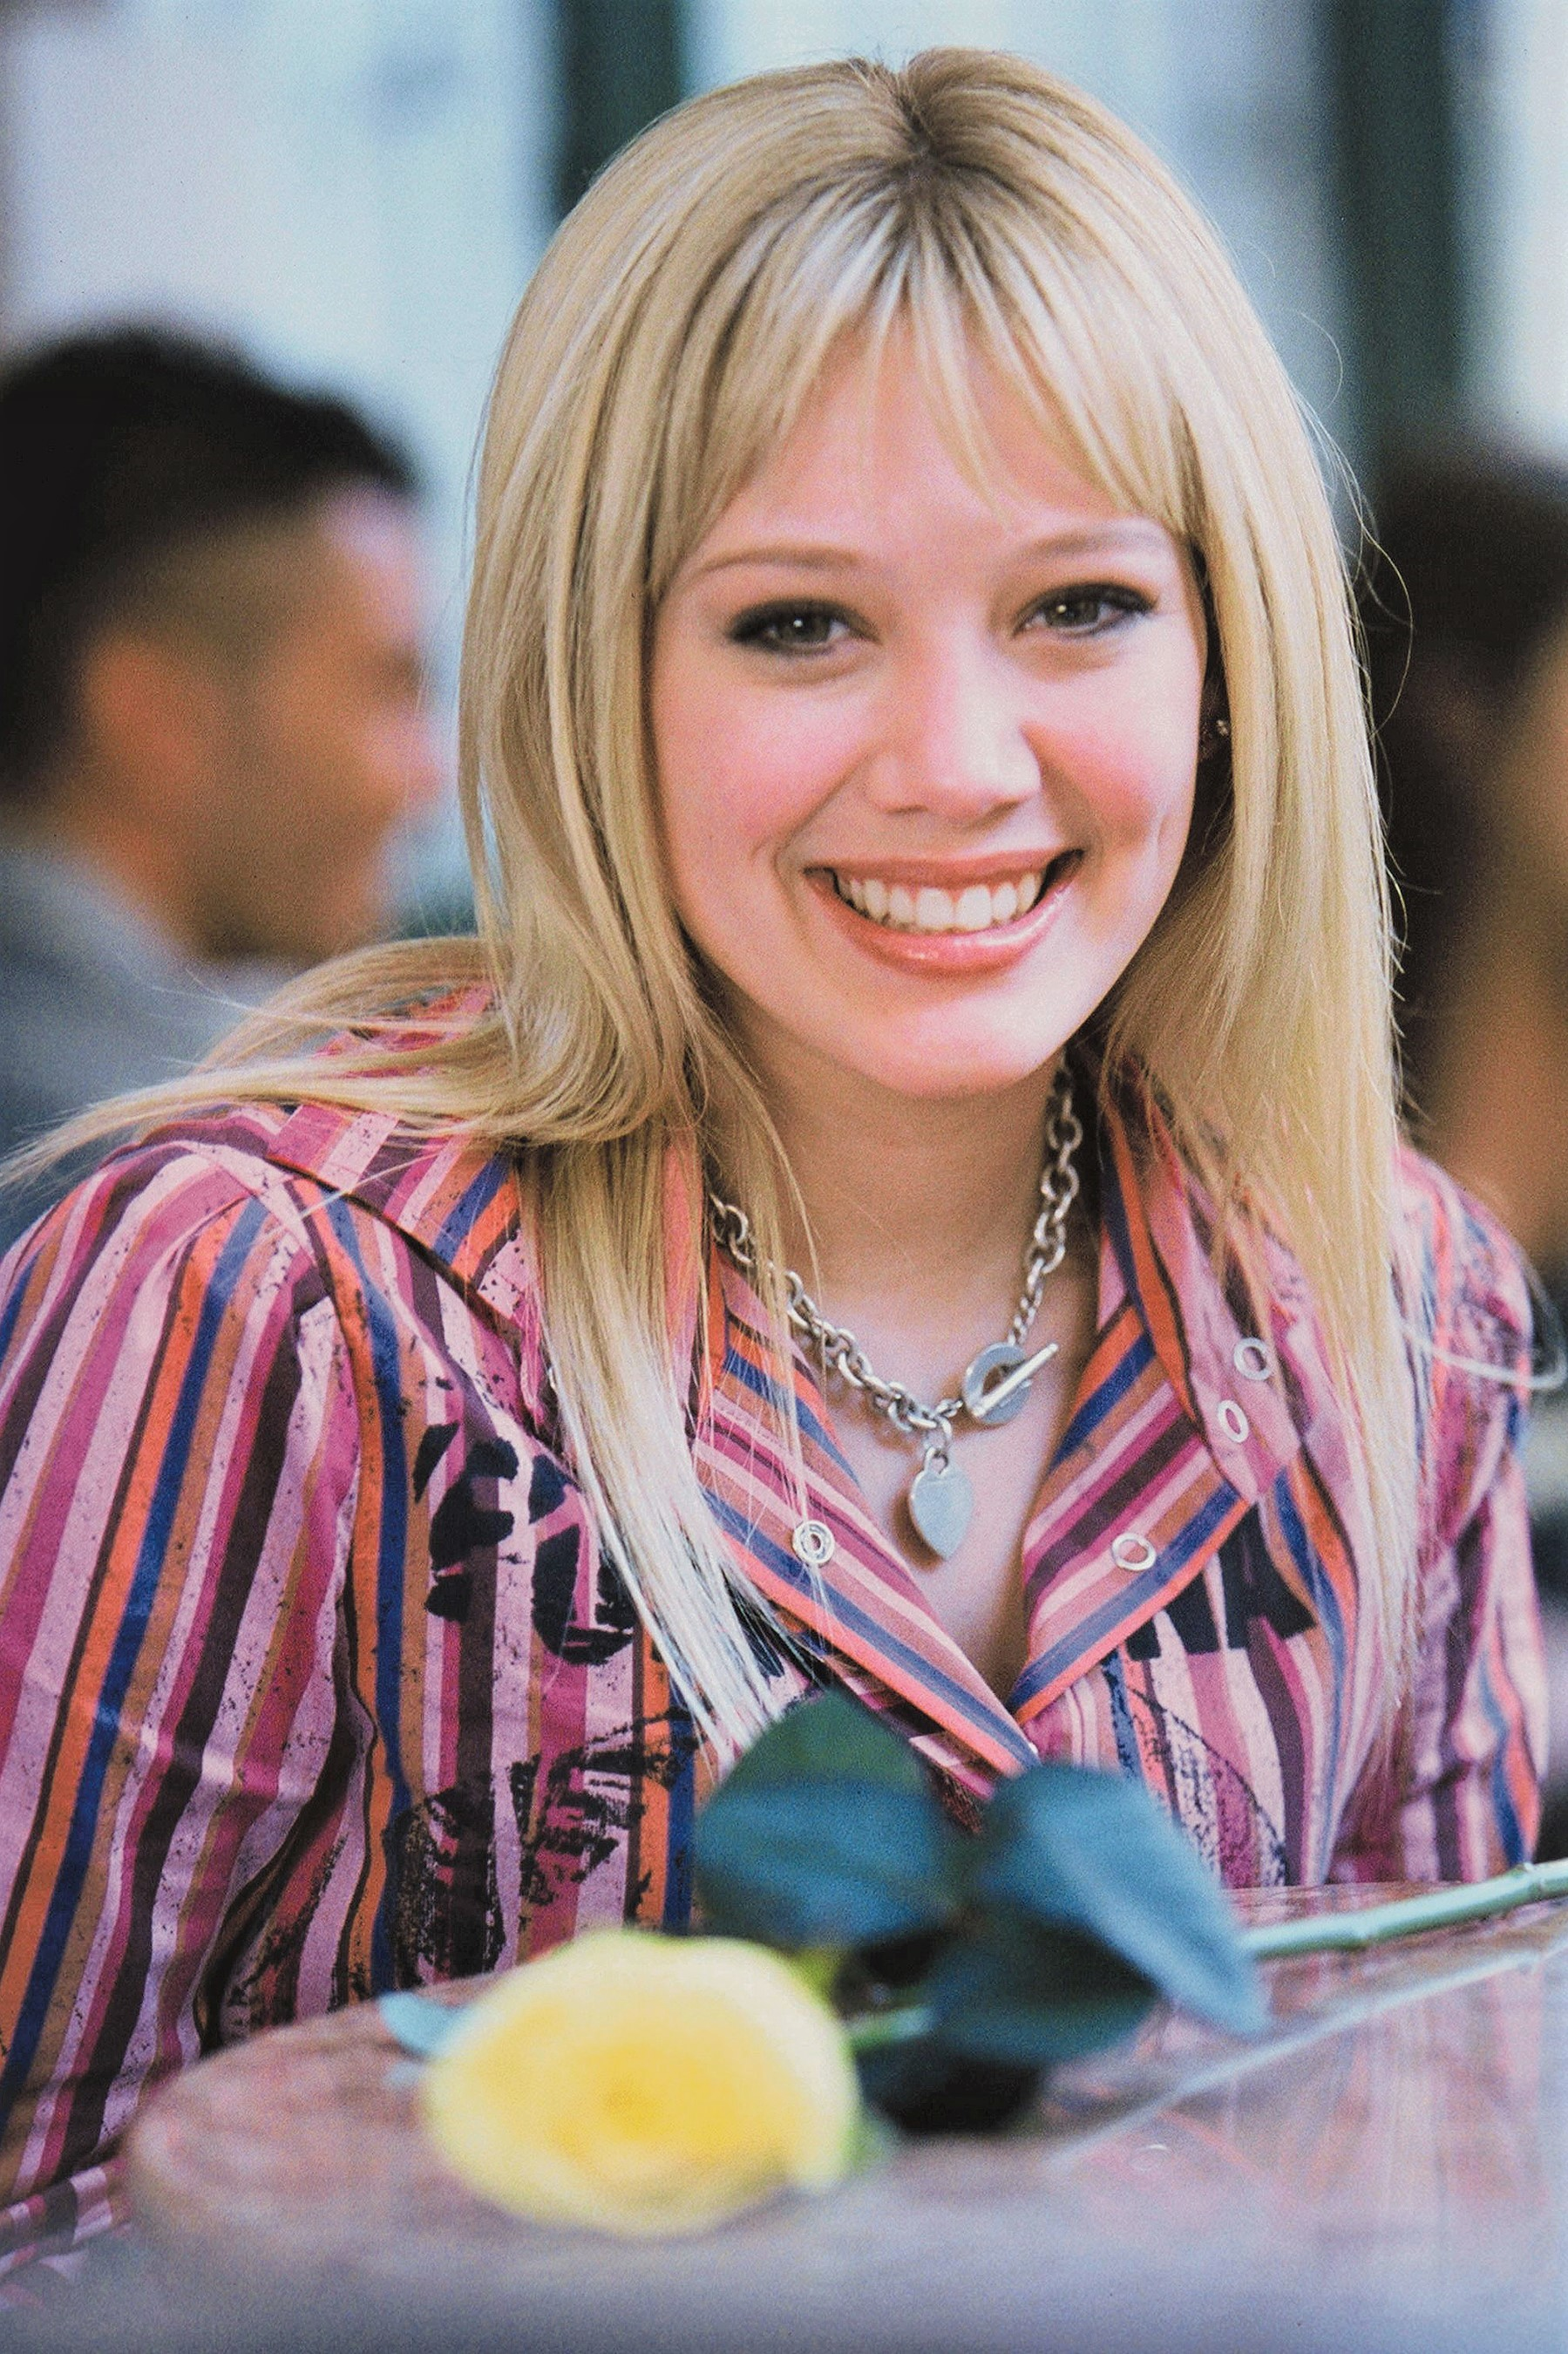 Hilary Duff In The Lizzie McGuire Movie